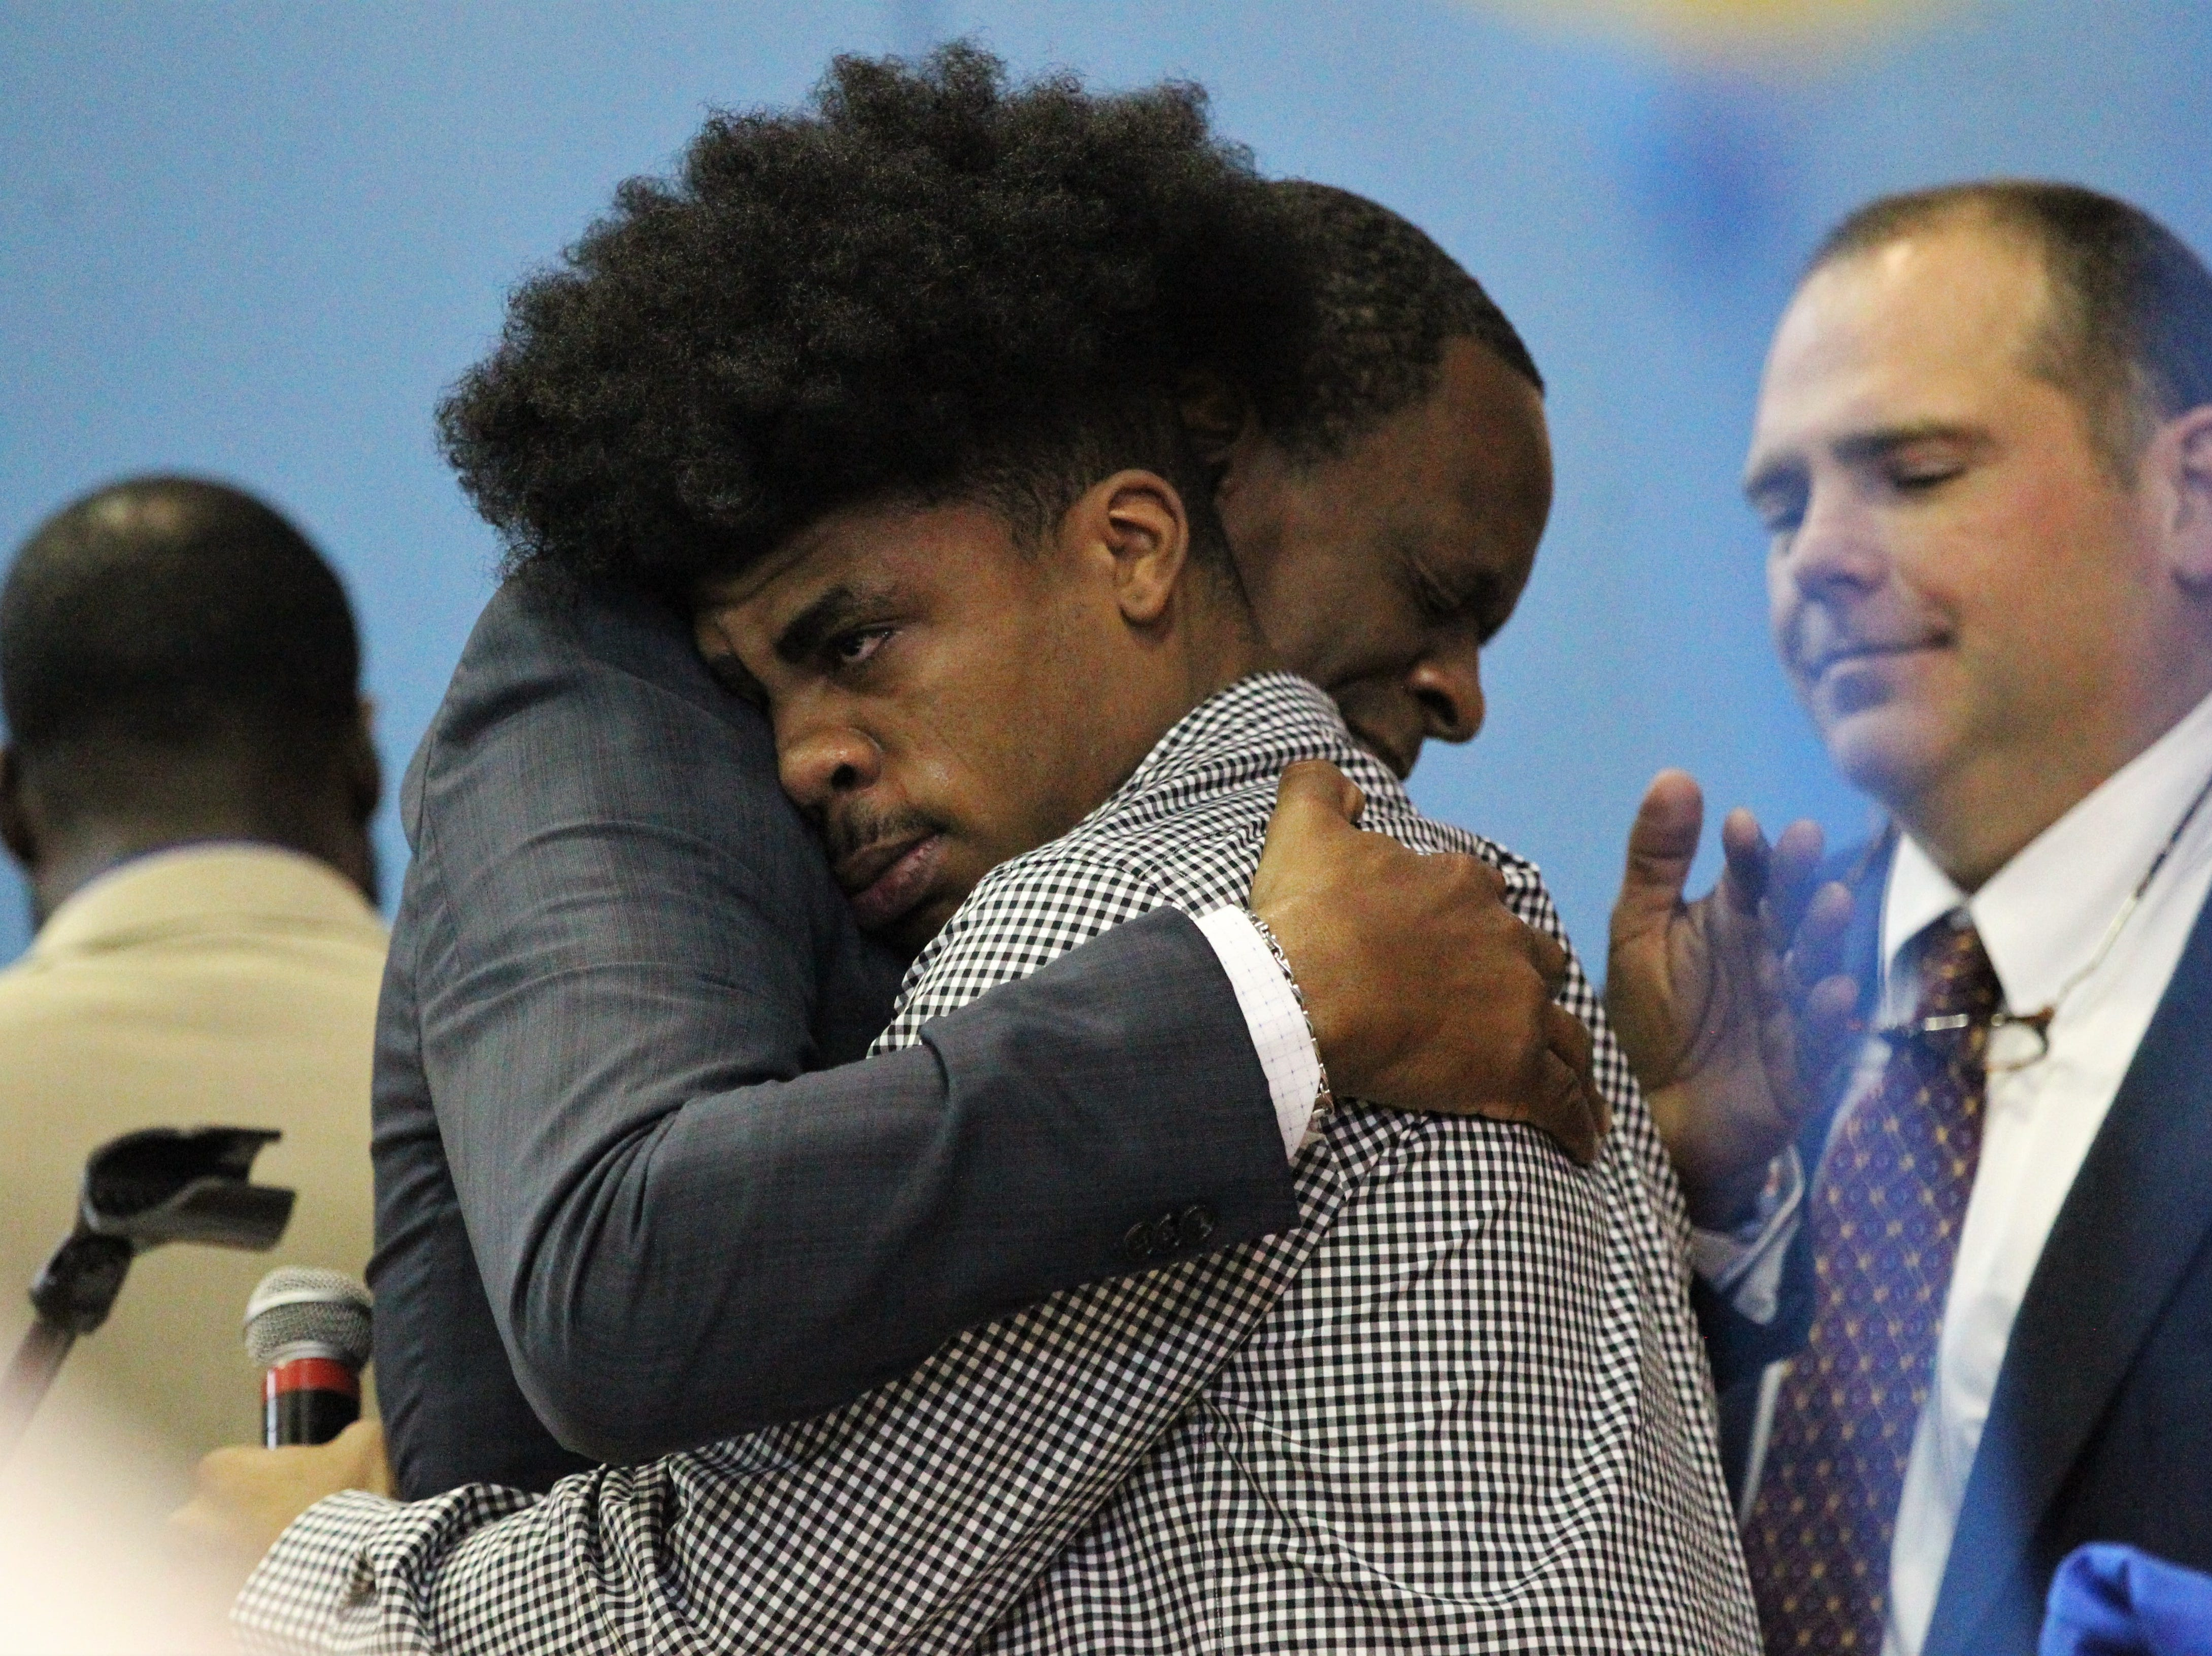 Jefferson County receiver Armon Williams gets a hug from Rev. Greg James during Jefferson County's signing day ceremony on Feb. 13, 2019. Williams, who signed with Fullerton College, got emotional talking about how his coach Leroy Smith, James, and state attorney Jack Campbell helped him get his life turned around after he committed a crime and spent time in jail.